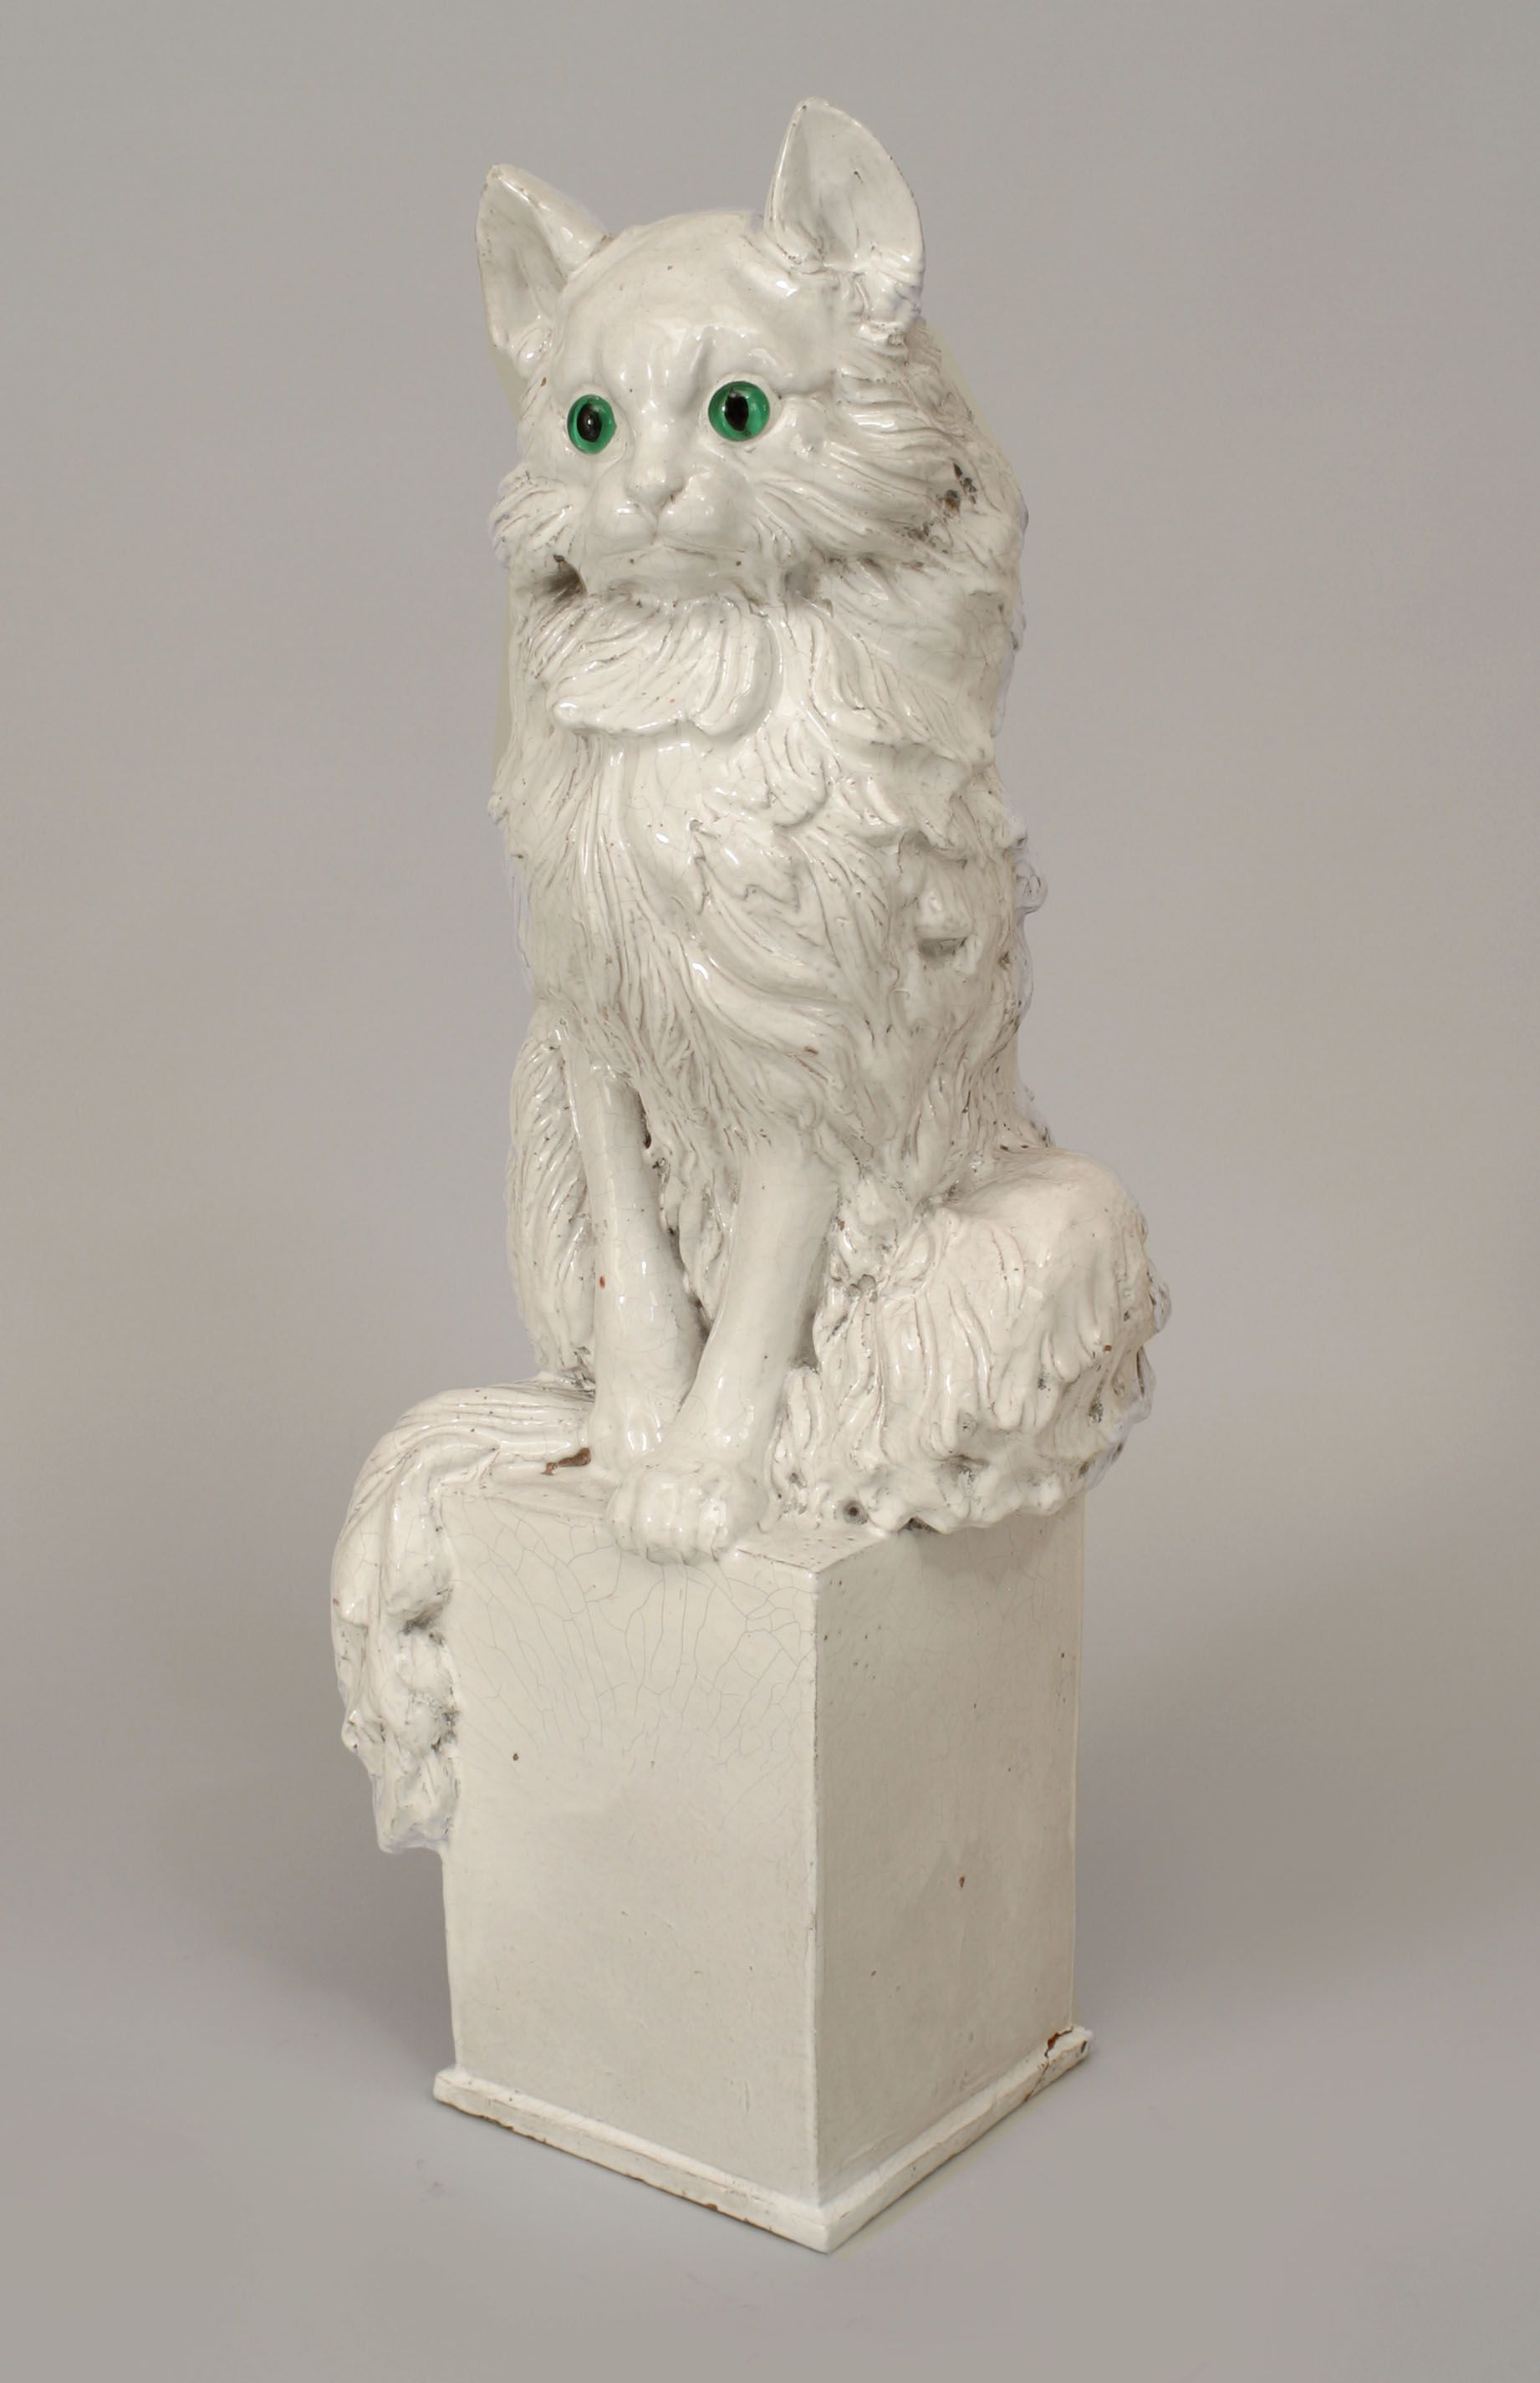 Italian s white ceramic figure of a life size seated cat with